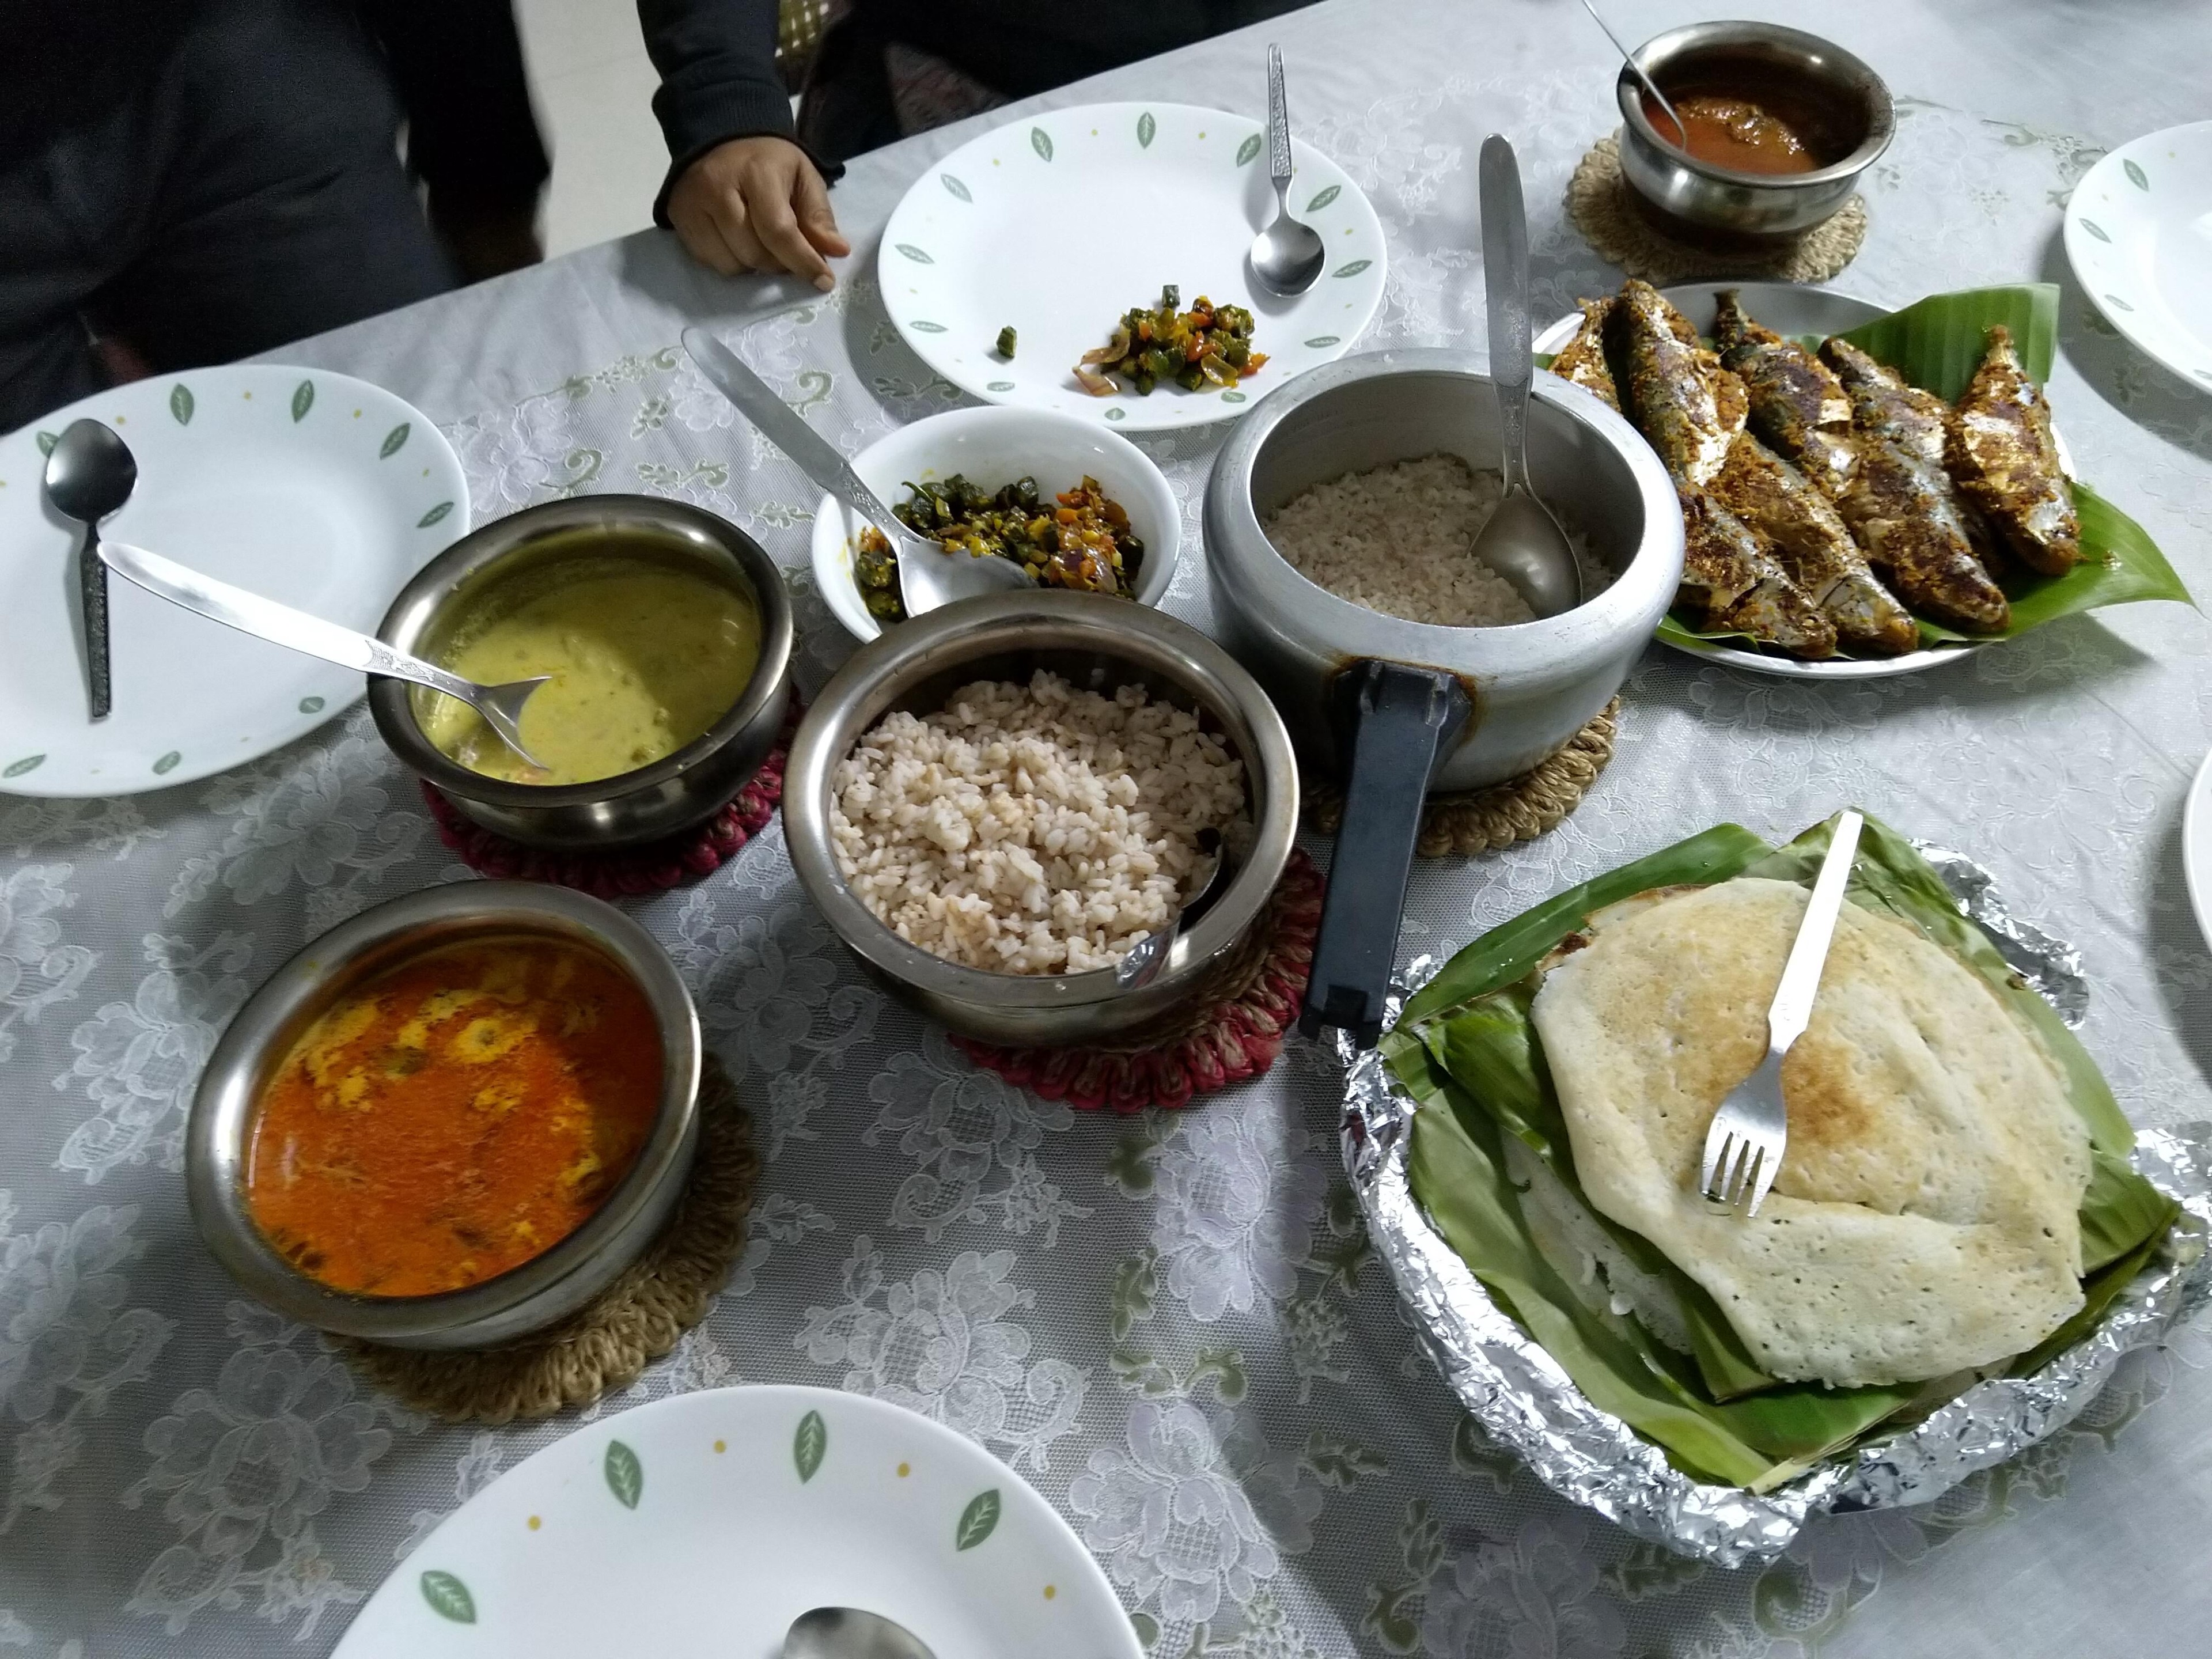 A South Indian fish meal with curries, rice, appams and fried fish